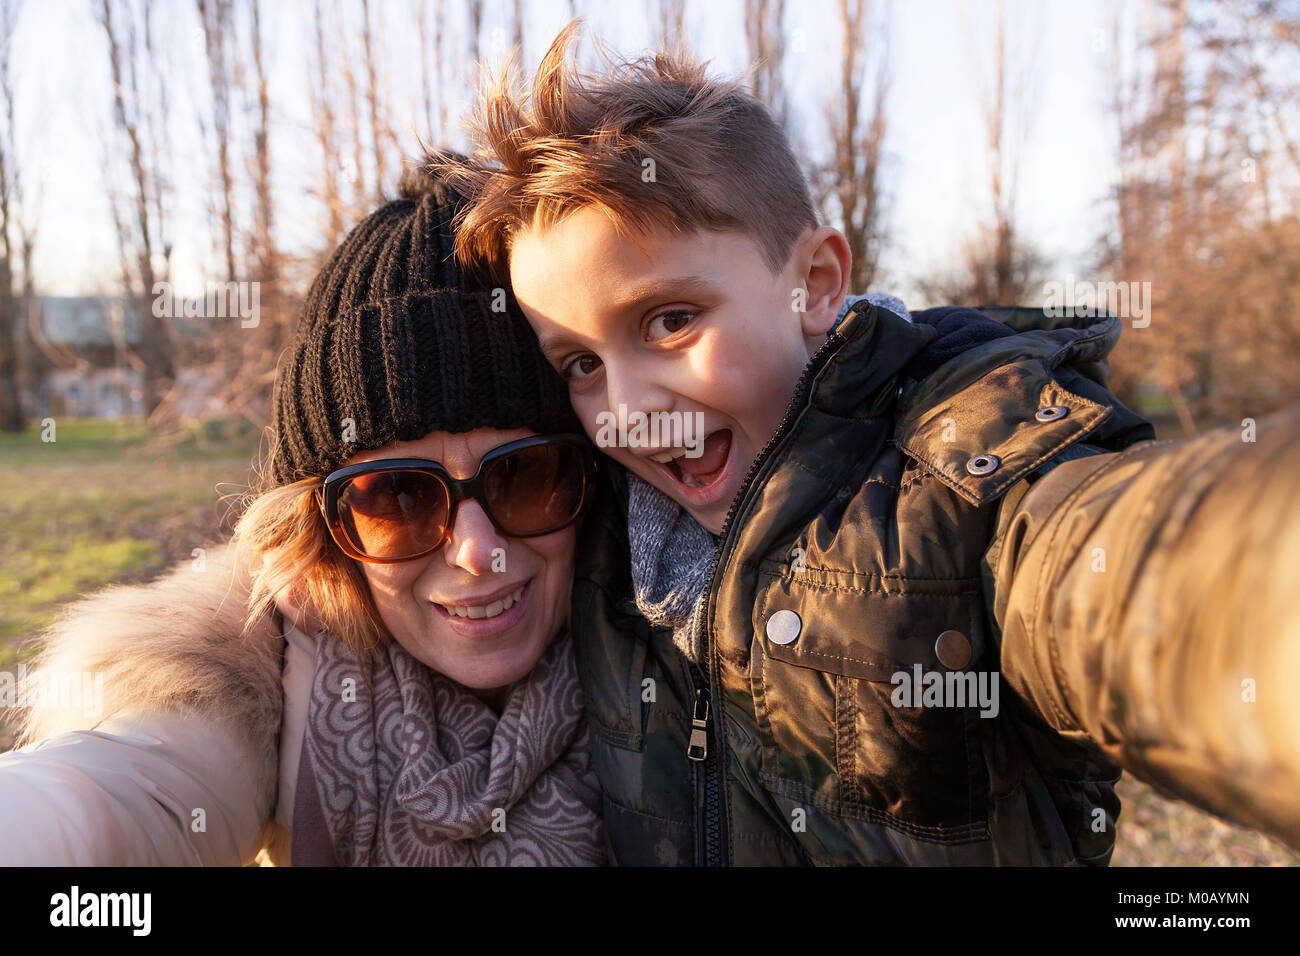 mother and son takes a selfie in a public park in winter. concept of people having fun - Stock Image